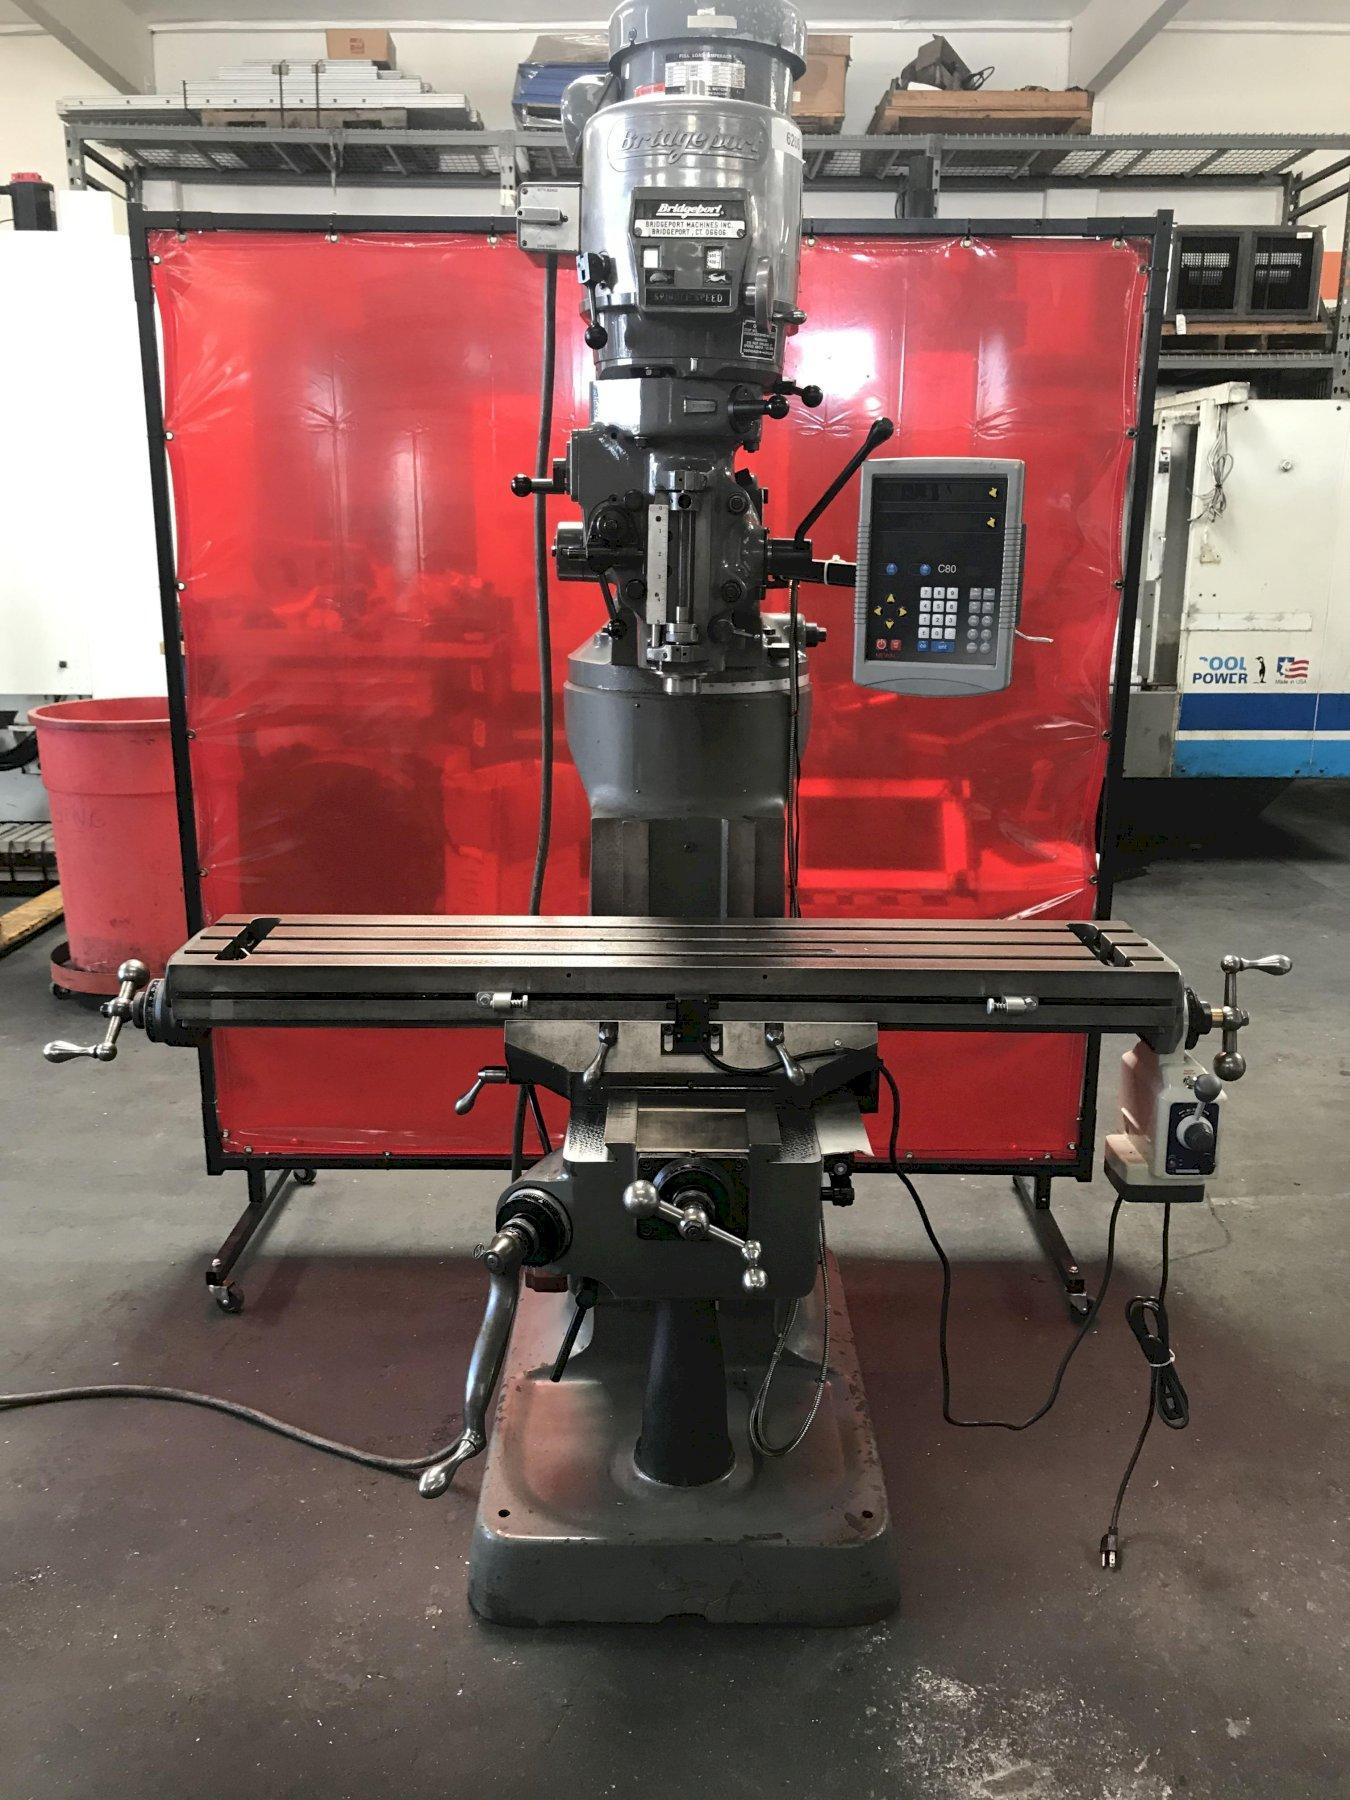 Bridgeport Series I Vertical Mill with Newall 2-Axis C80 DRO, Rebuilt Head, Align Power Feed Table, New XY Screw & Nut, 2-HP Vari-Speed, and Chrome Ways.